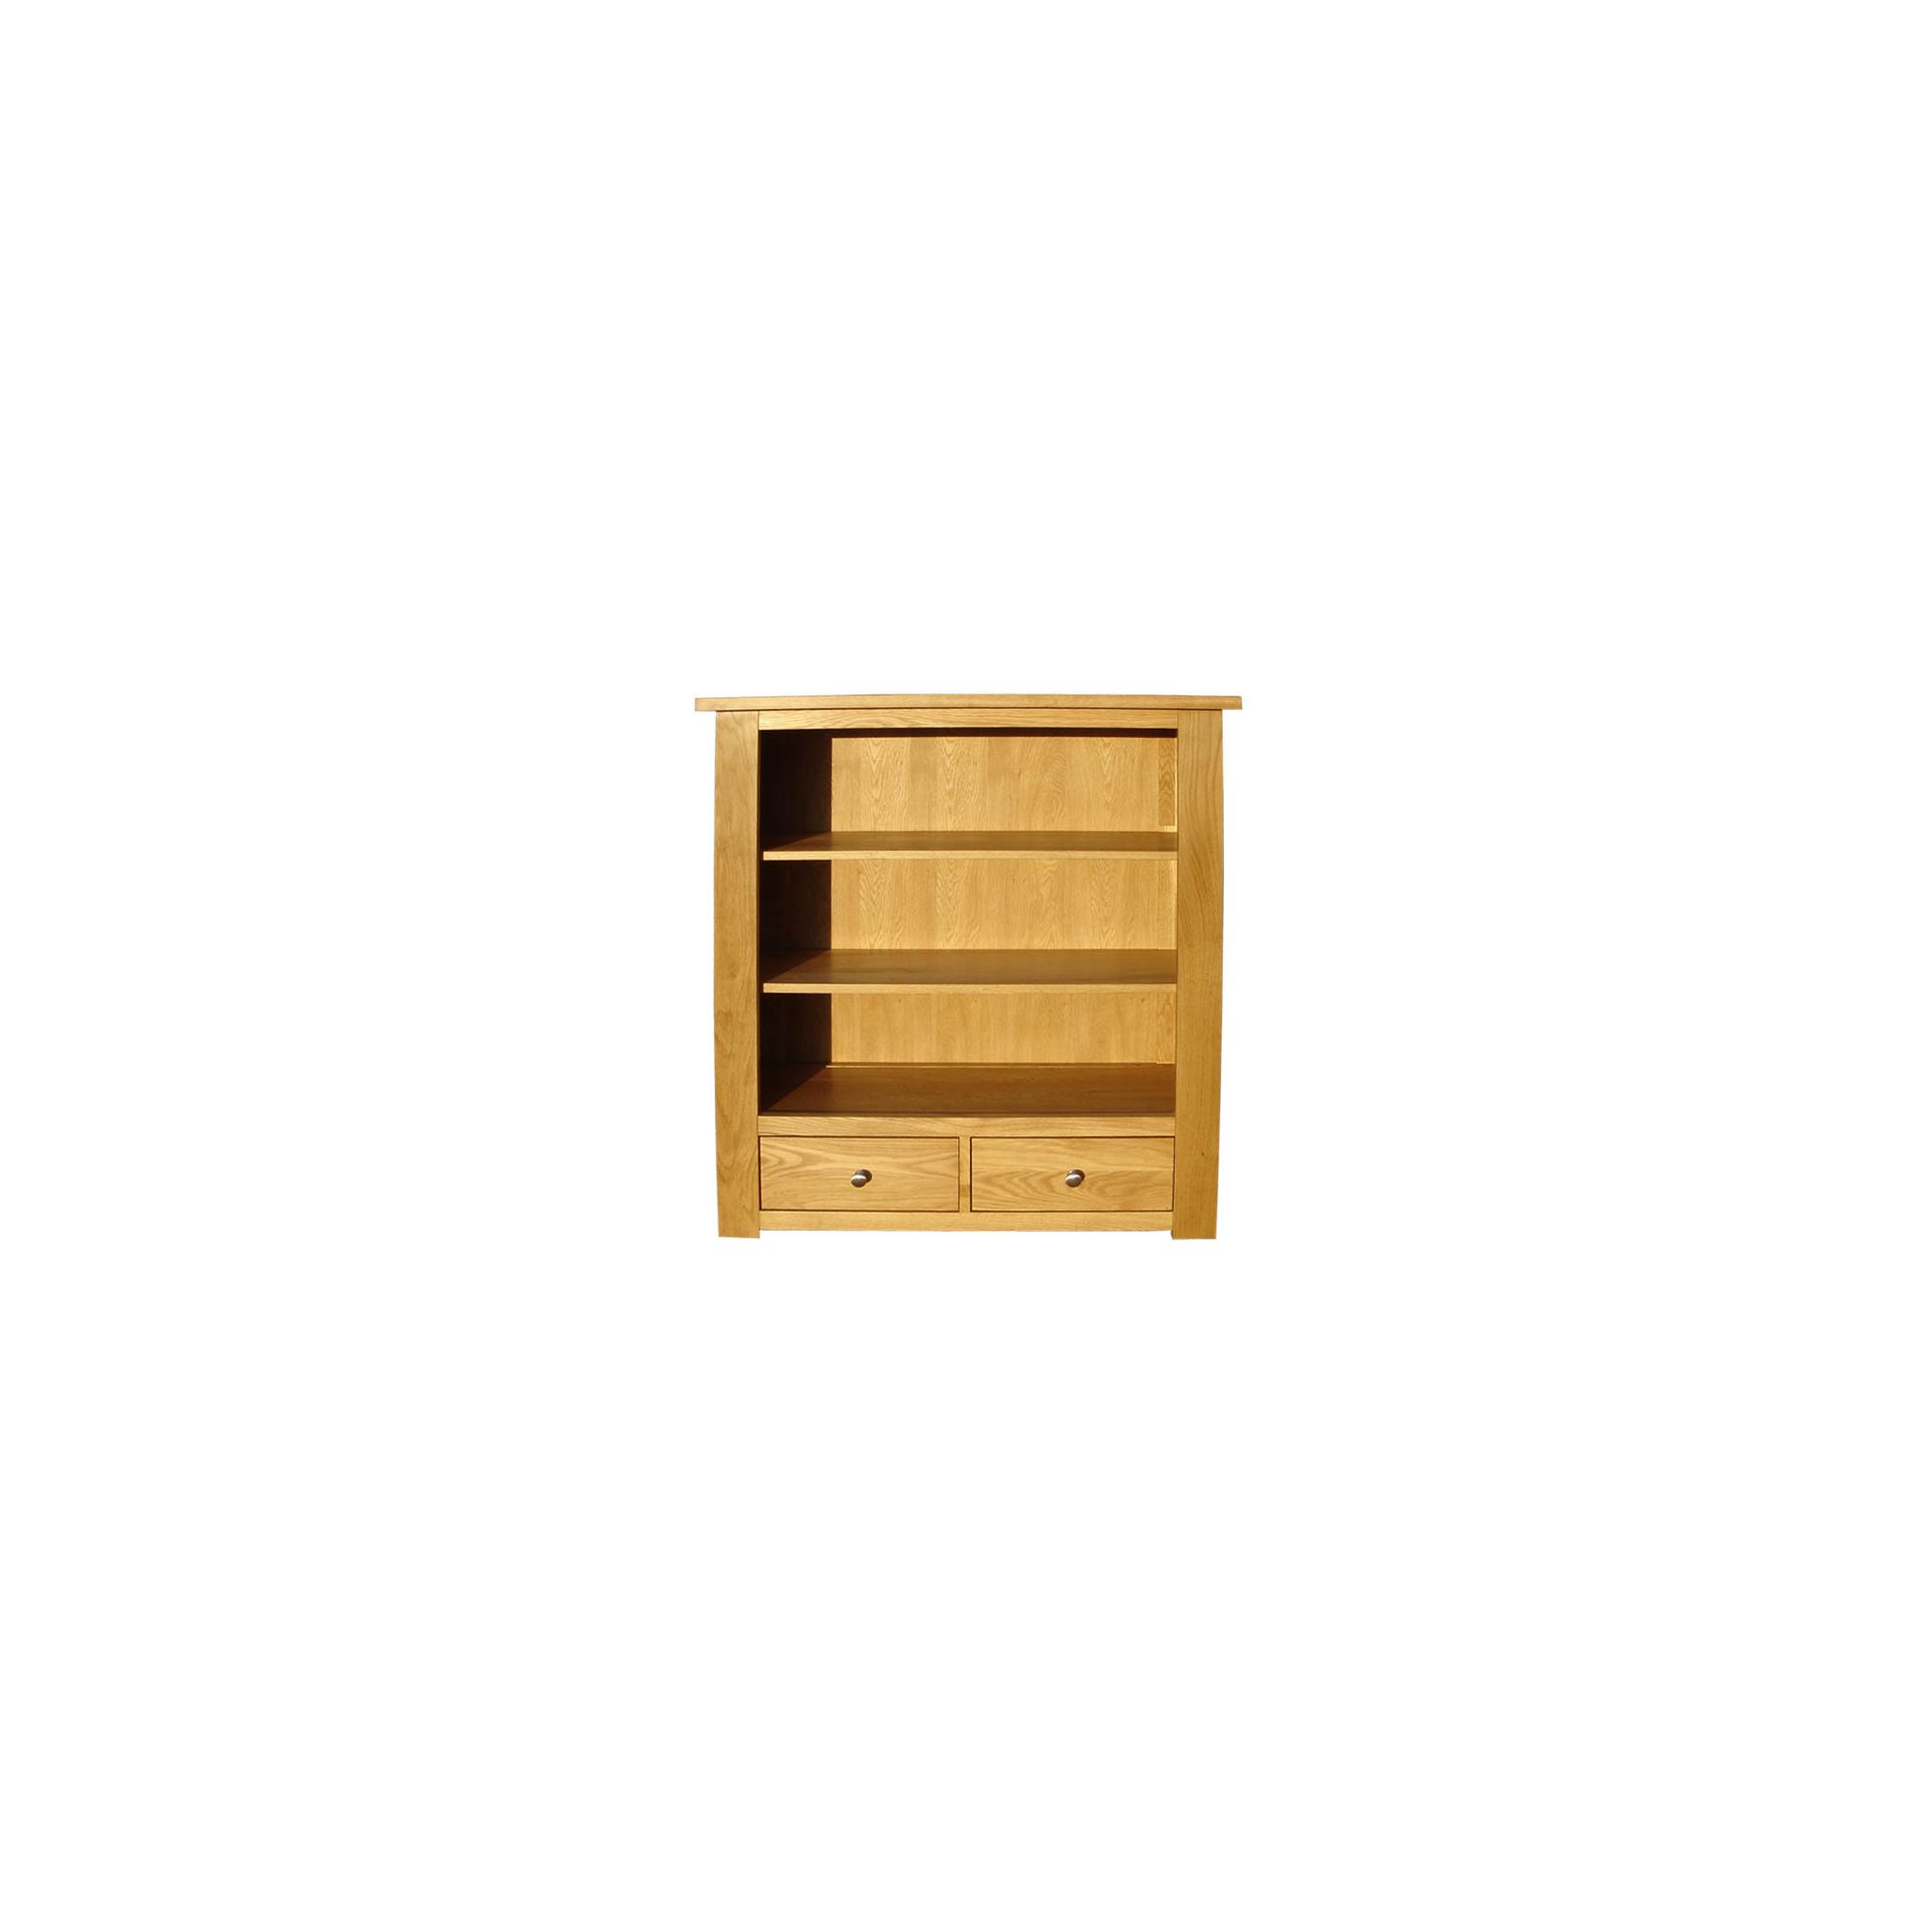 Home Zone Furniture Lincoln Oak 2009 Low Book Case at Tesco Direct